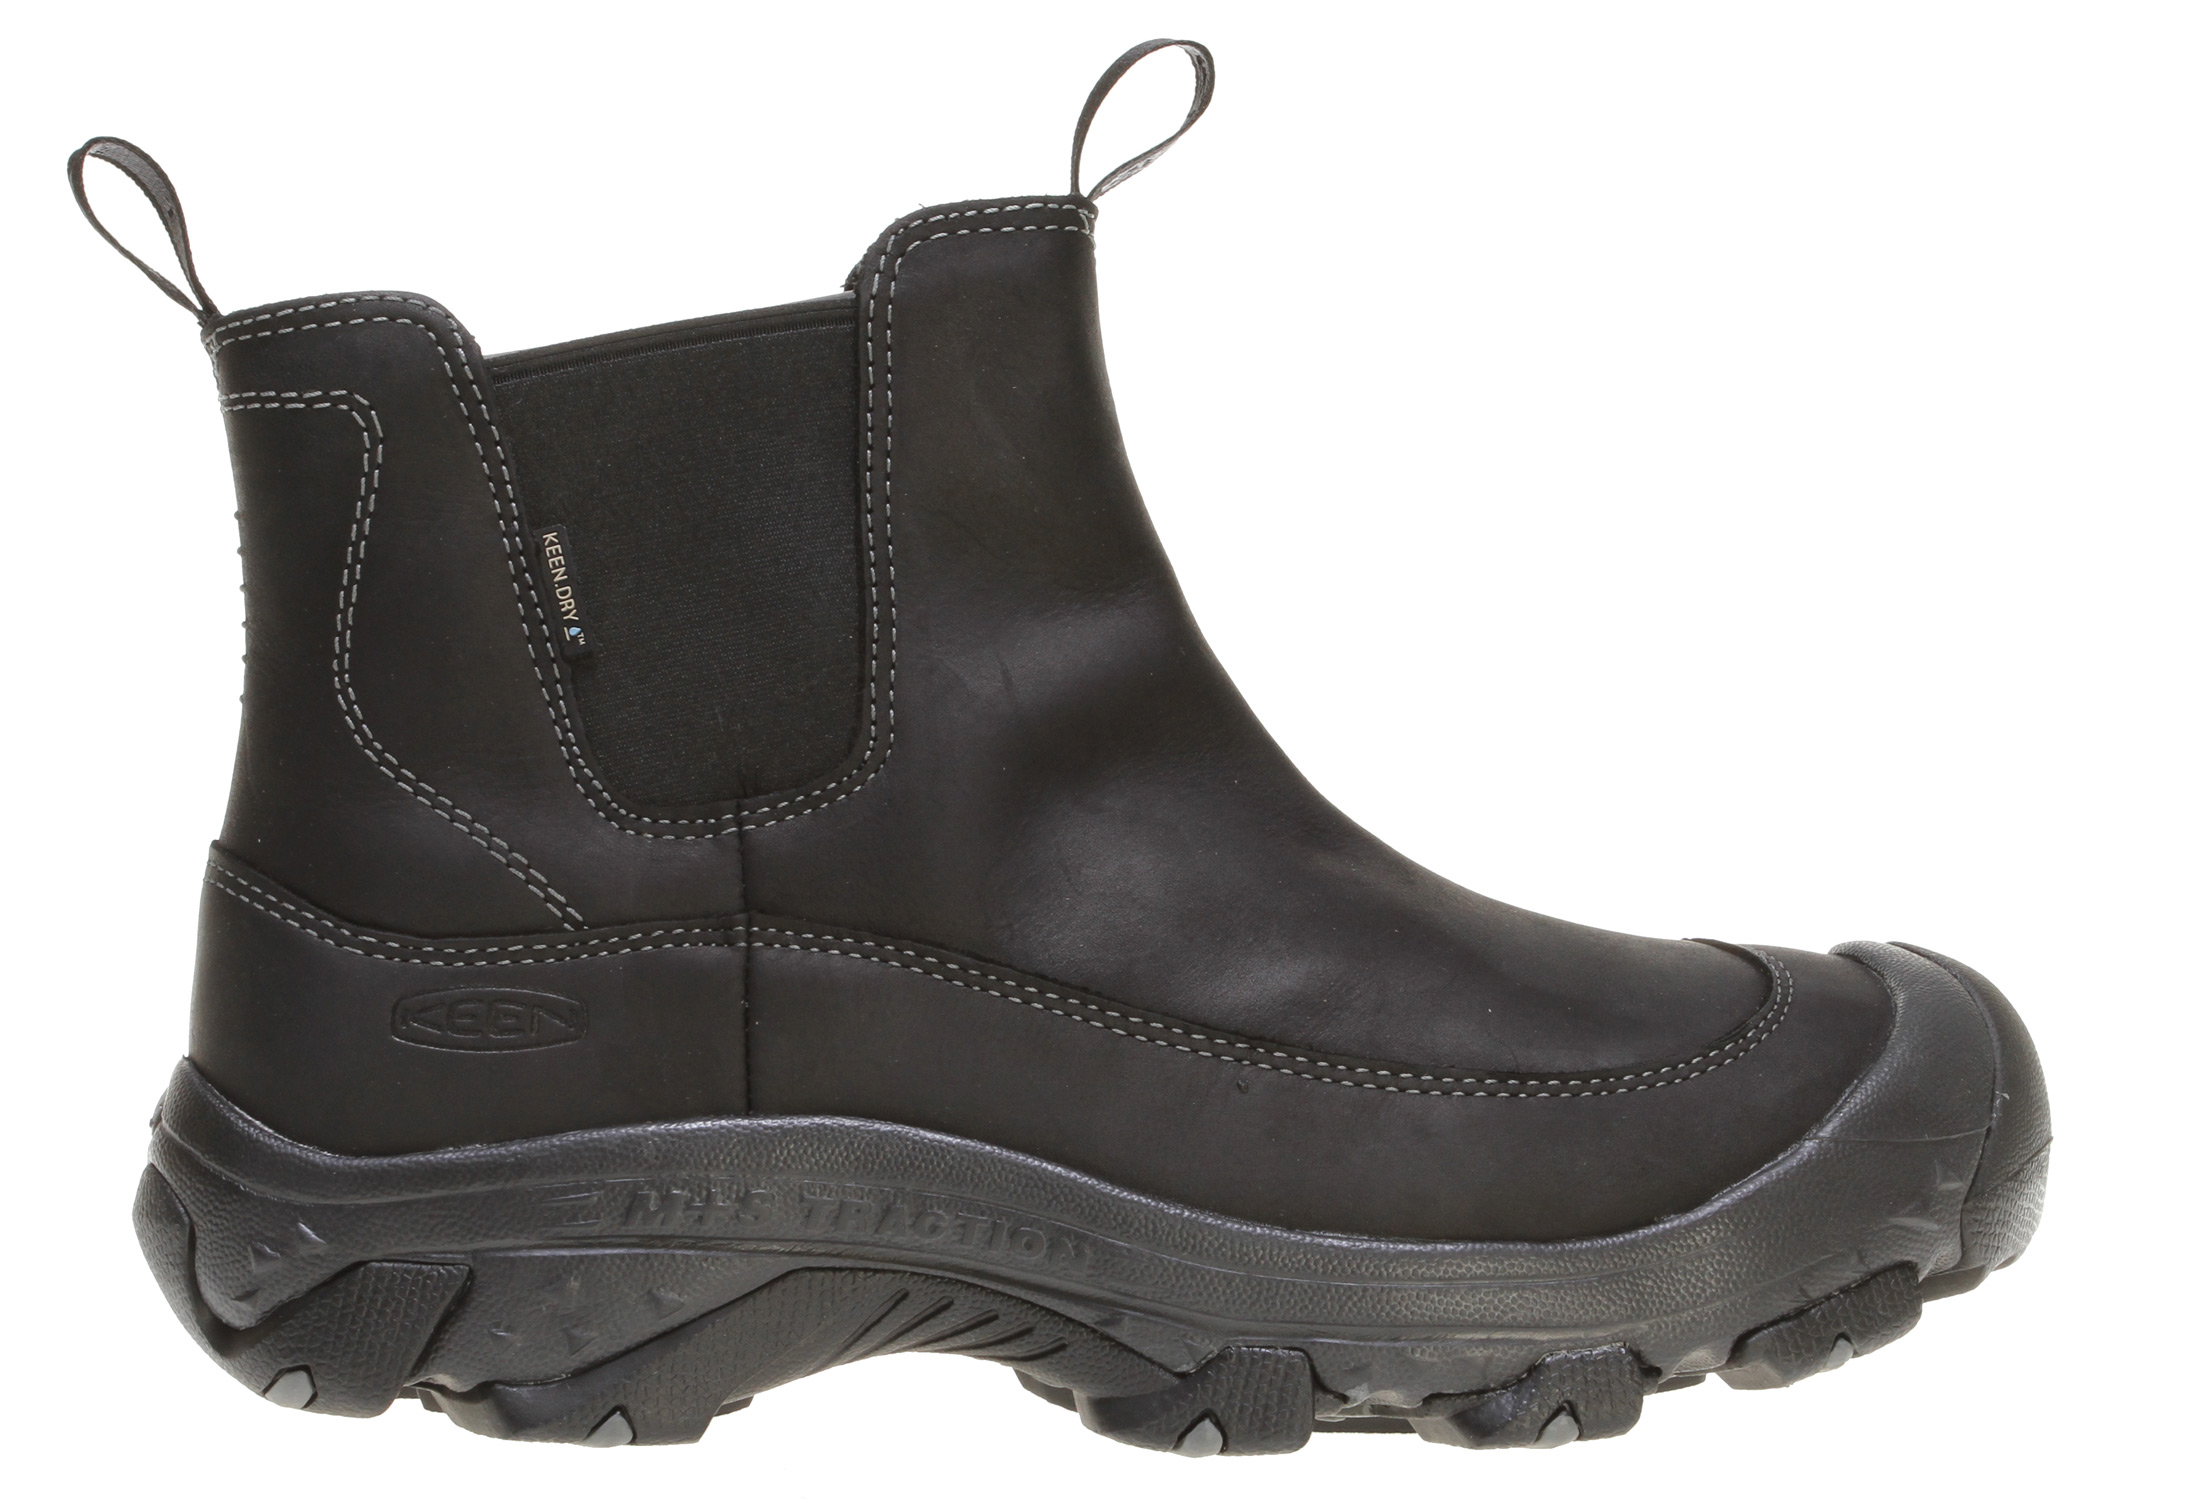 "Camp and Hike The Anchorage Boot to offers the warmth and all-season traction of a winter pack boot, combined with classic KEEN protection and style. Pairing a handsome leather upper with an aggressive dual climate rubber outsole, this boot looks good standing up to harsh winter wear. Lined with a KEEN.DRY waterproof/breathable membrane, and insulated with 200g of KEEN.WARM insulation, they keep water out, heat in, and footing solid.Key Features of the Keen Anchorage Boots: Weight: 19.28 oz / 548.902 grams Lining: Waterproof breathable lining Upper: Waterproof nubuck Rubber: Dual climate carbon non-marking Collar Height: 7.5"" Calf Circumference: 12"" Activities: Hiking, City Streets, Snow Type: Boots: Cold - insulated, Wet - waterproof 200g KEEN.WARM insulation 4mm multi directional lugs Dual climate non-marking rubber outsole Gore elastic side panels for easy on/off Injection molded EVA midsole KEEN.DRY waterproof breathable membrane Non-marking rubber outsole Patented toe protection TPU stability shank Waterproof nubuck upper KEEN.DRY: A proprietary waterproof, breathable membrane that lets vapor out without letting water in. KEEN.WARM: A lightweight insulation that keeps you warm. Who knew charcoal bamboo could create something that keeps your feet warm? But it makes KEEN.WARM a lightweight, anti microbial insulation that provides warmth where you need it most. KEEN.DCR: The KEEN Dual Climate Rubber outsole hardens in cold weather to bite into packed snow - all in the name of traction. THERMAL HEAT SHIELD FOOTBED: On the outside, wooly softness; in the middle, support cushioning; and inside, a thermal foil barrier to harness radiant heat. Keeps the cold out and the heat in. - $76.95"